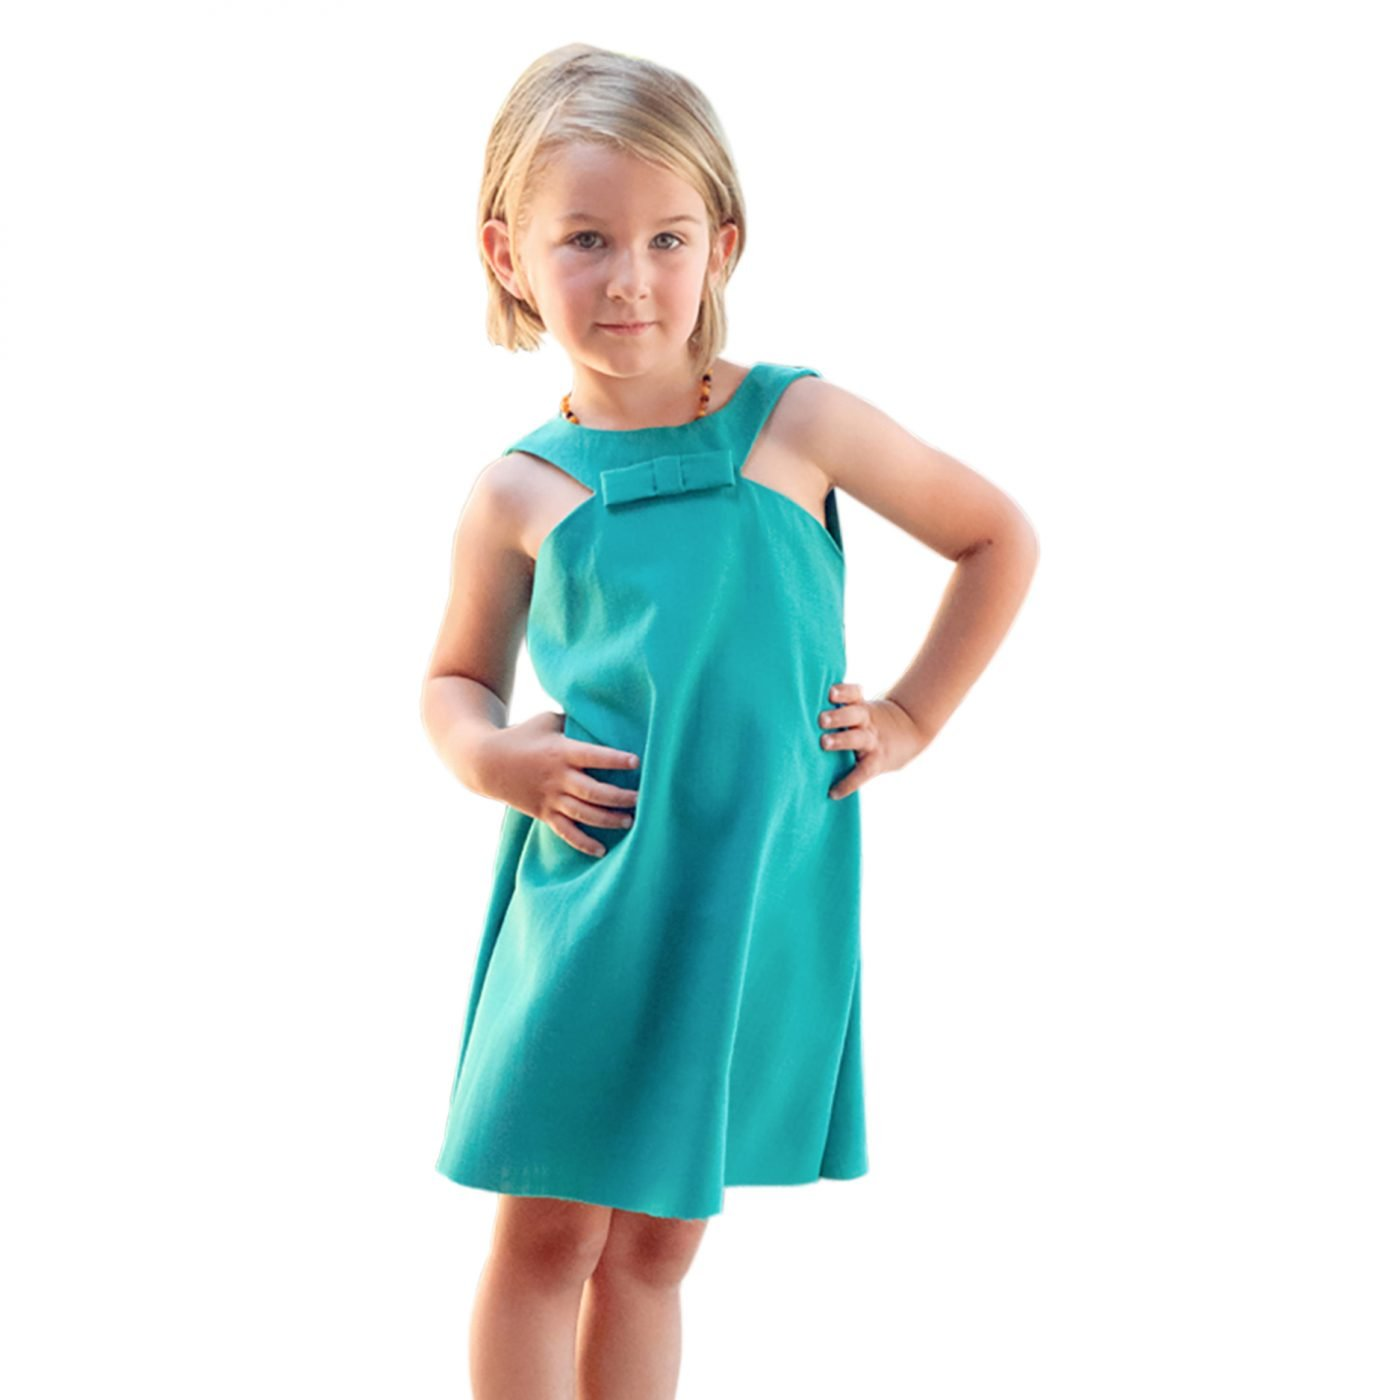 The Driehoek Dress PDF Sewing Pattern